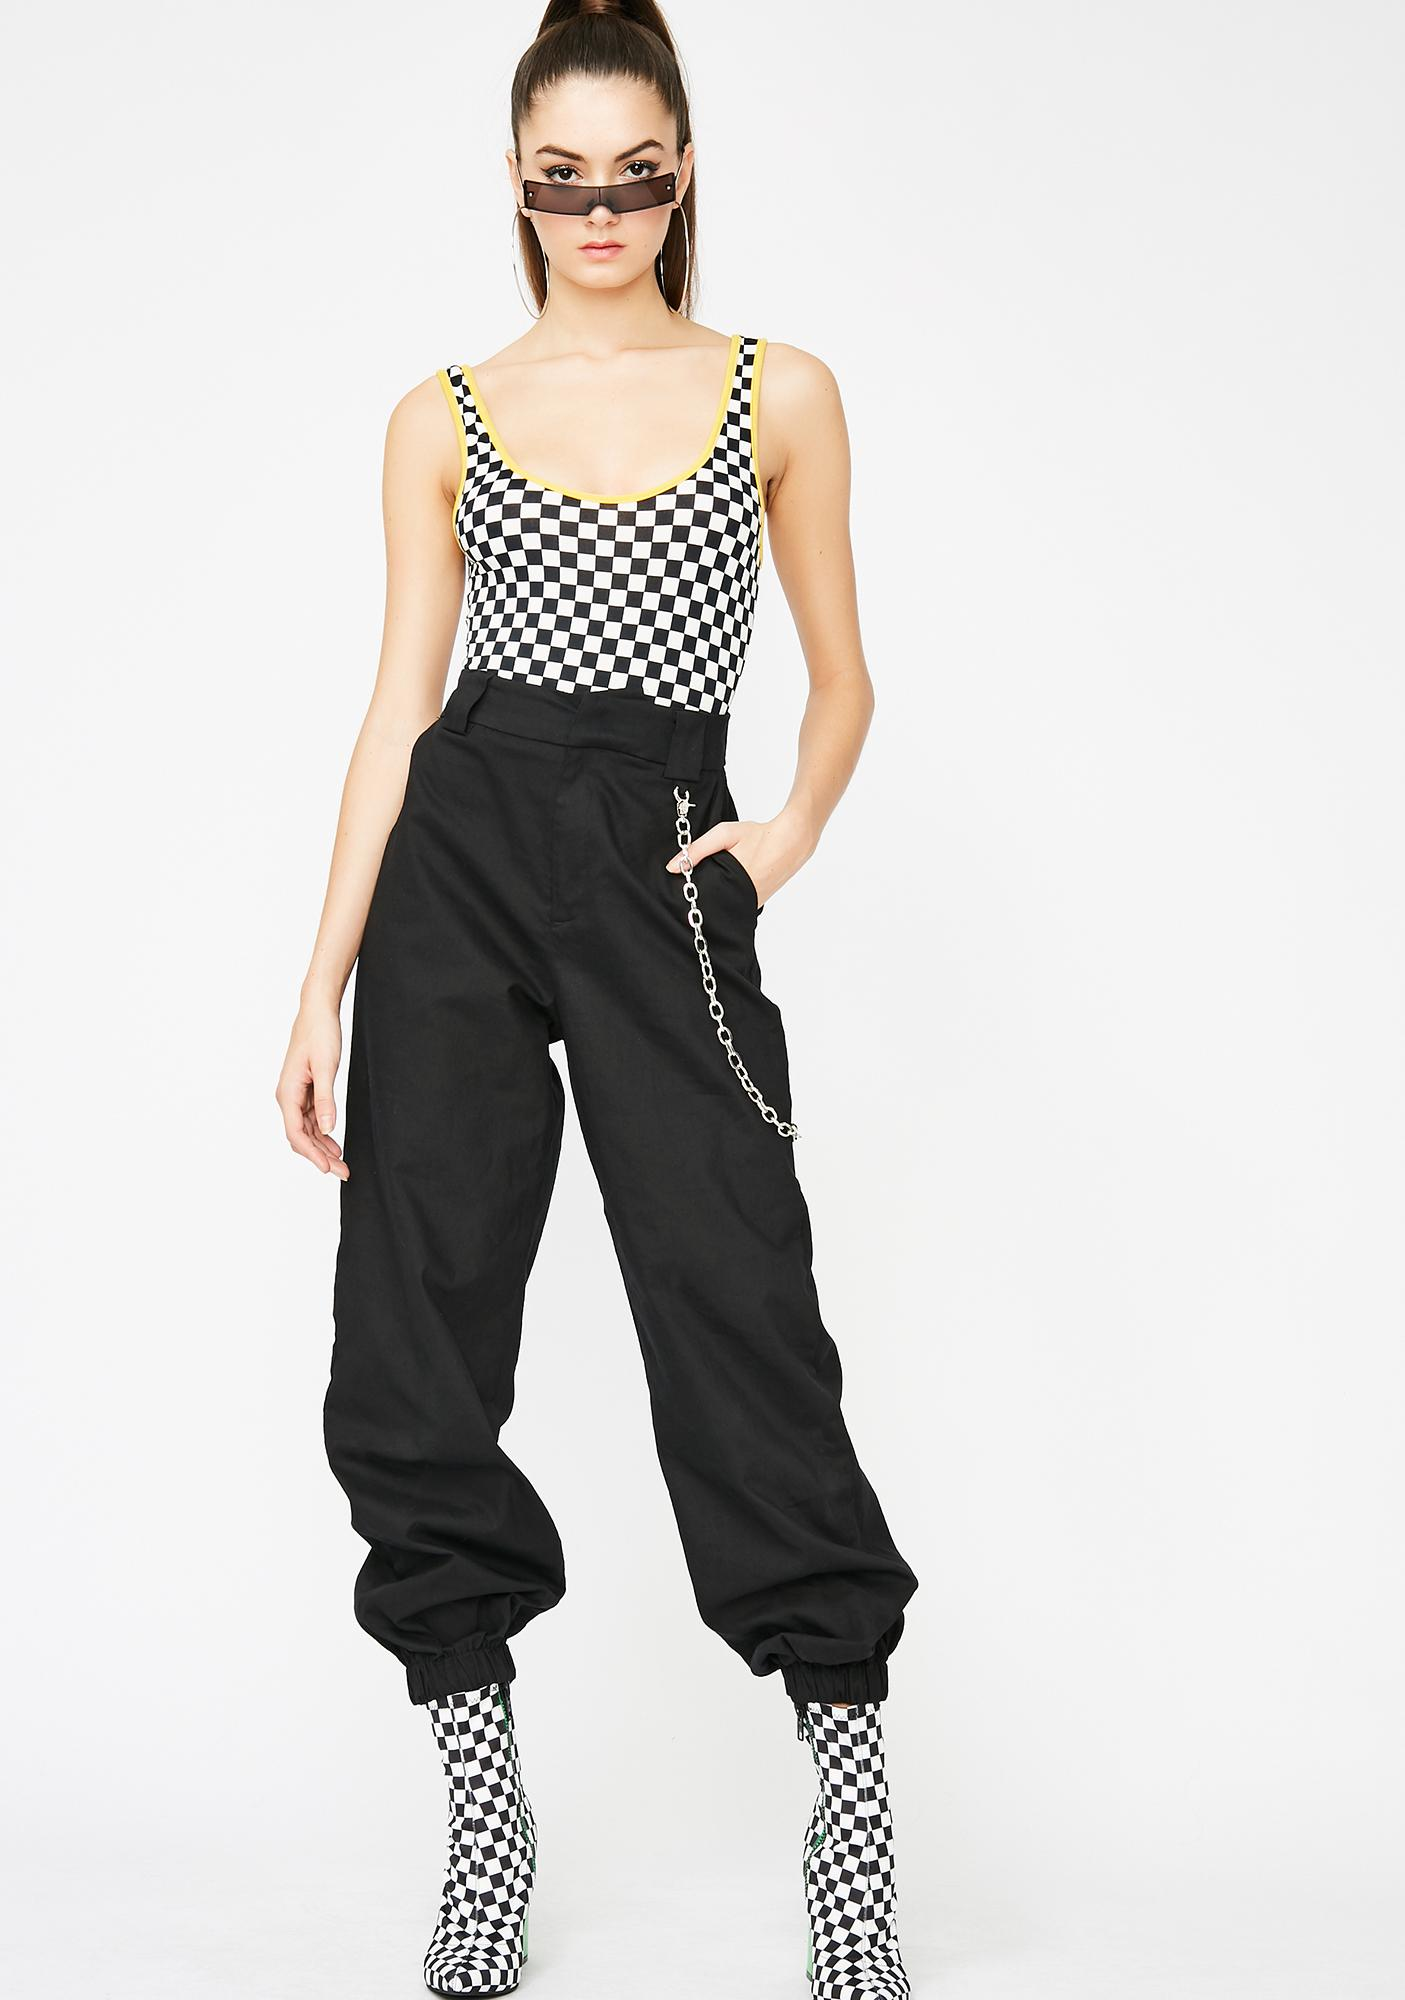 Live Fast Checkered Bodysuit